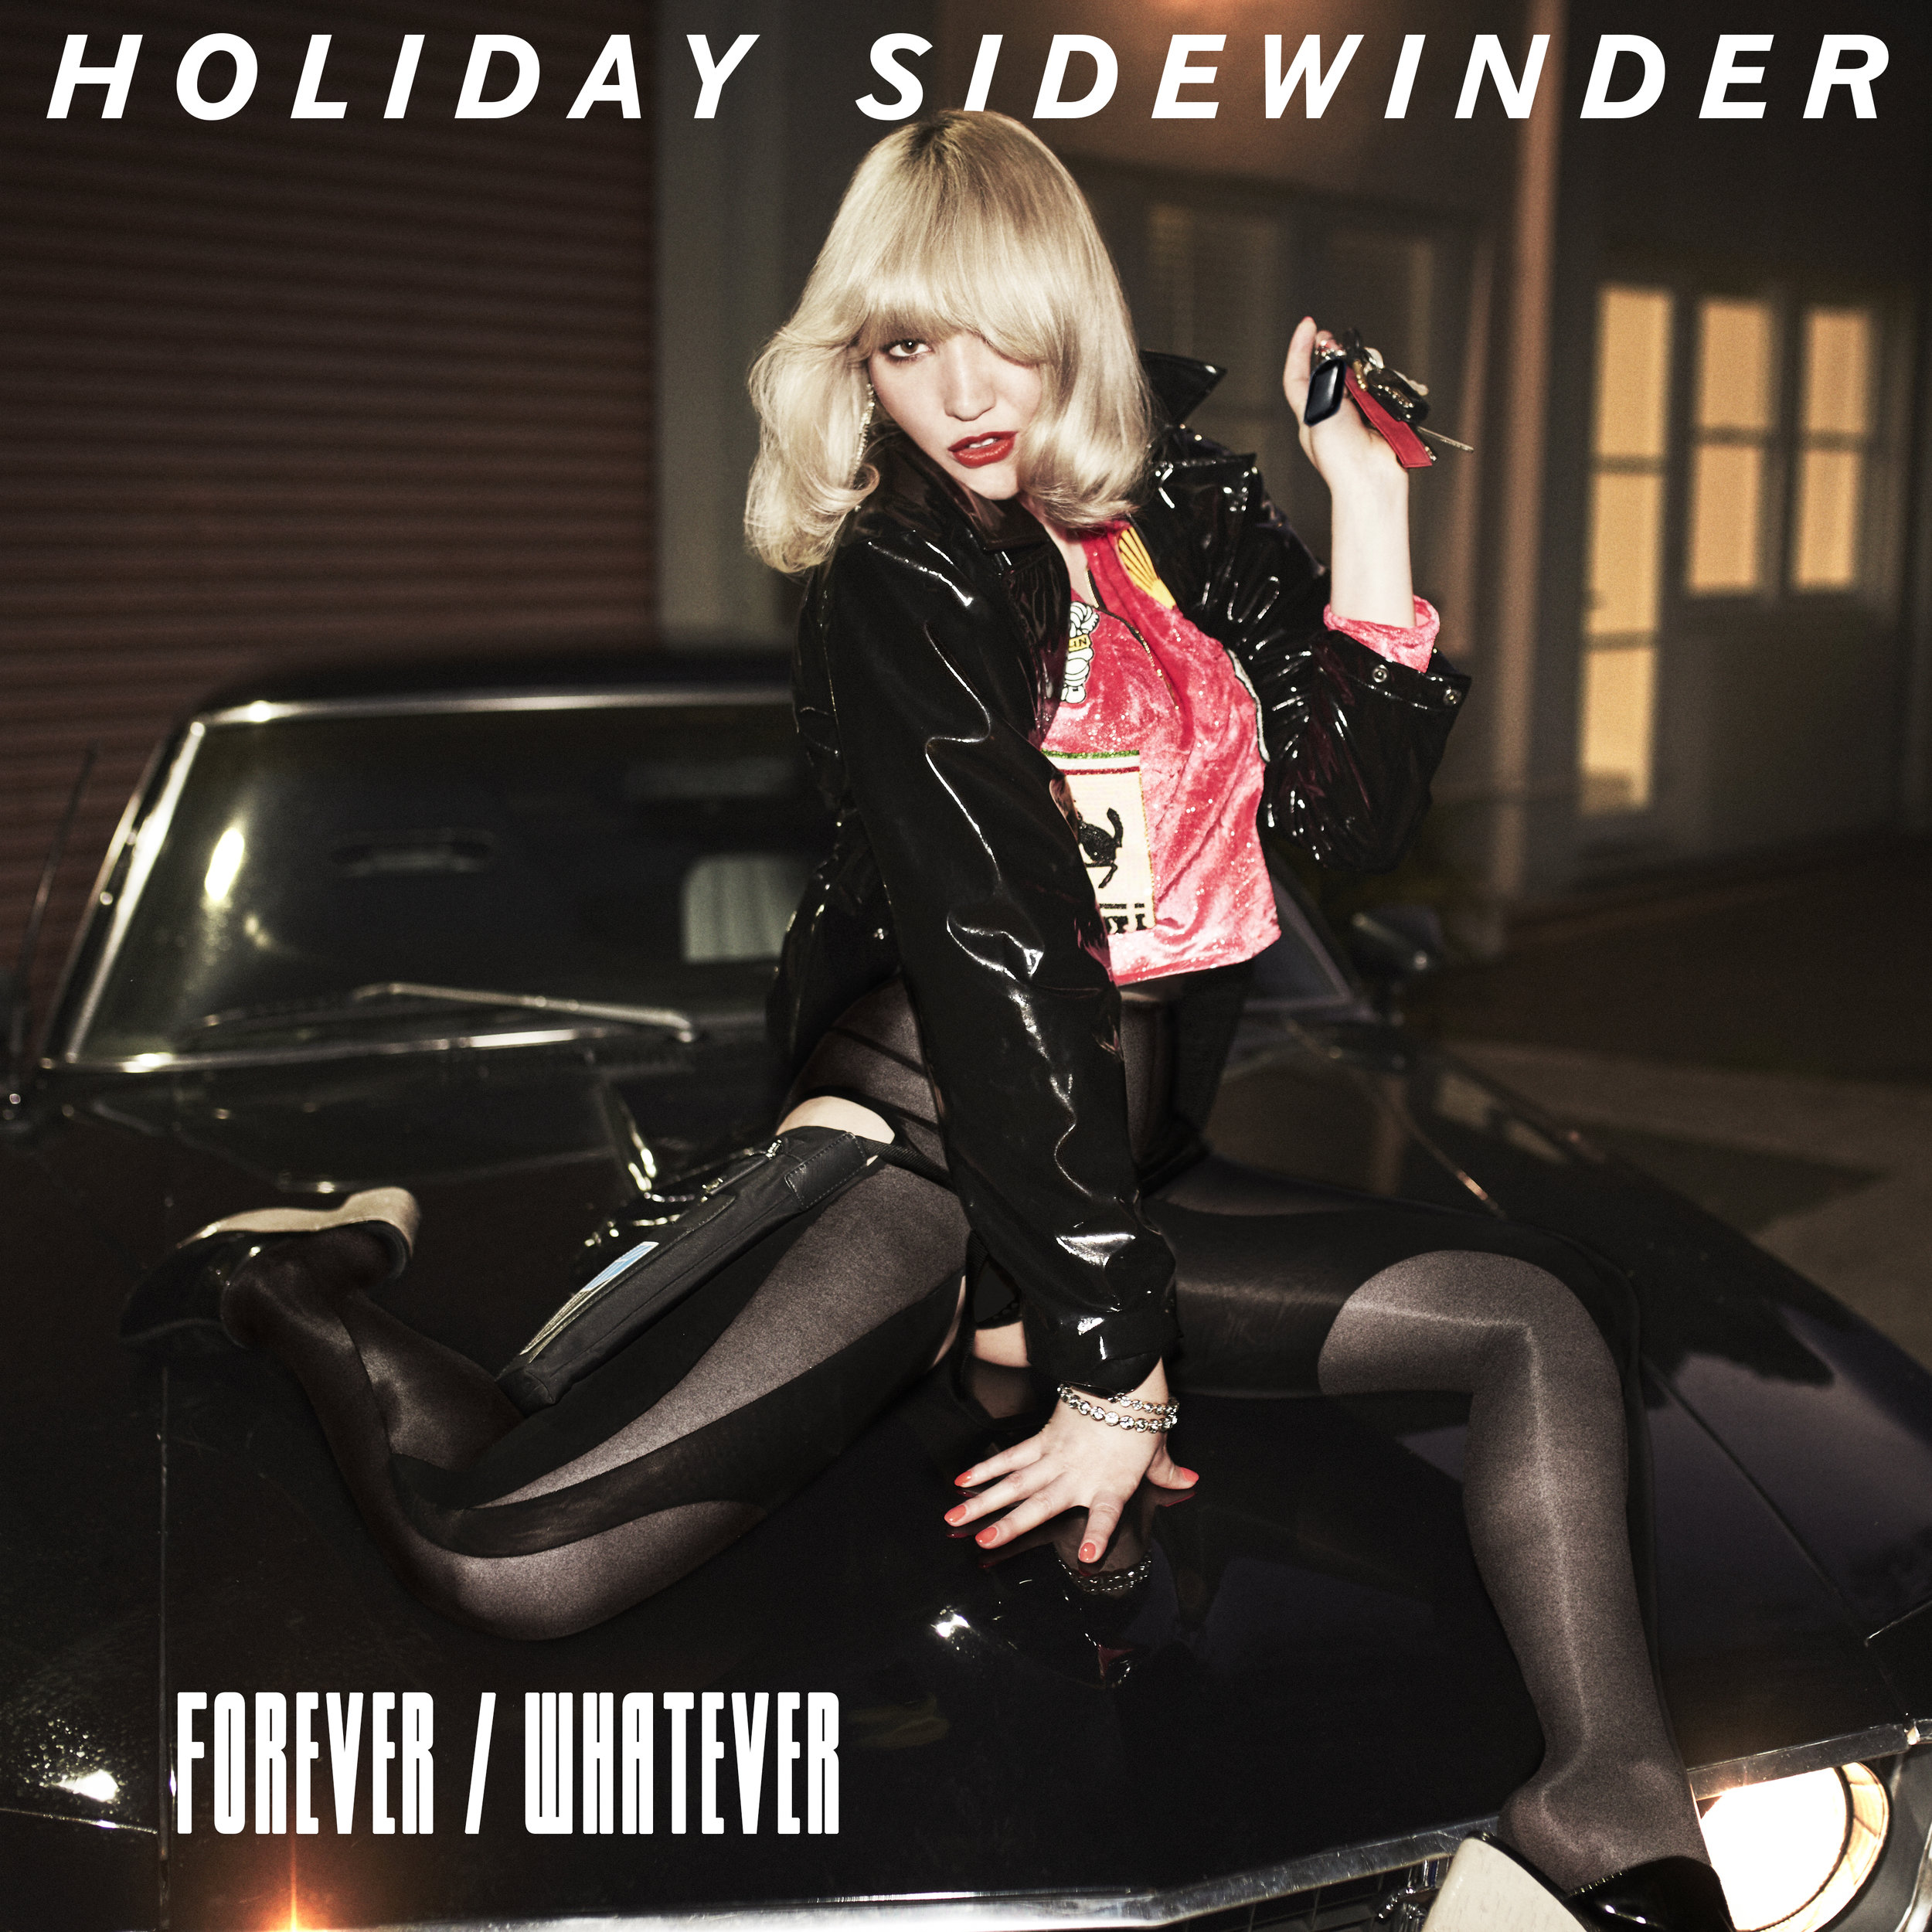 Holiday-Sidewinder-Forever-Whatever-Made-In-Chelsea.jpg